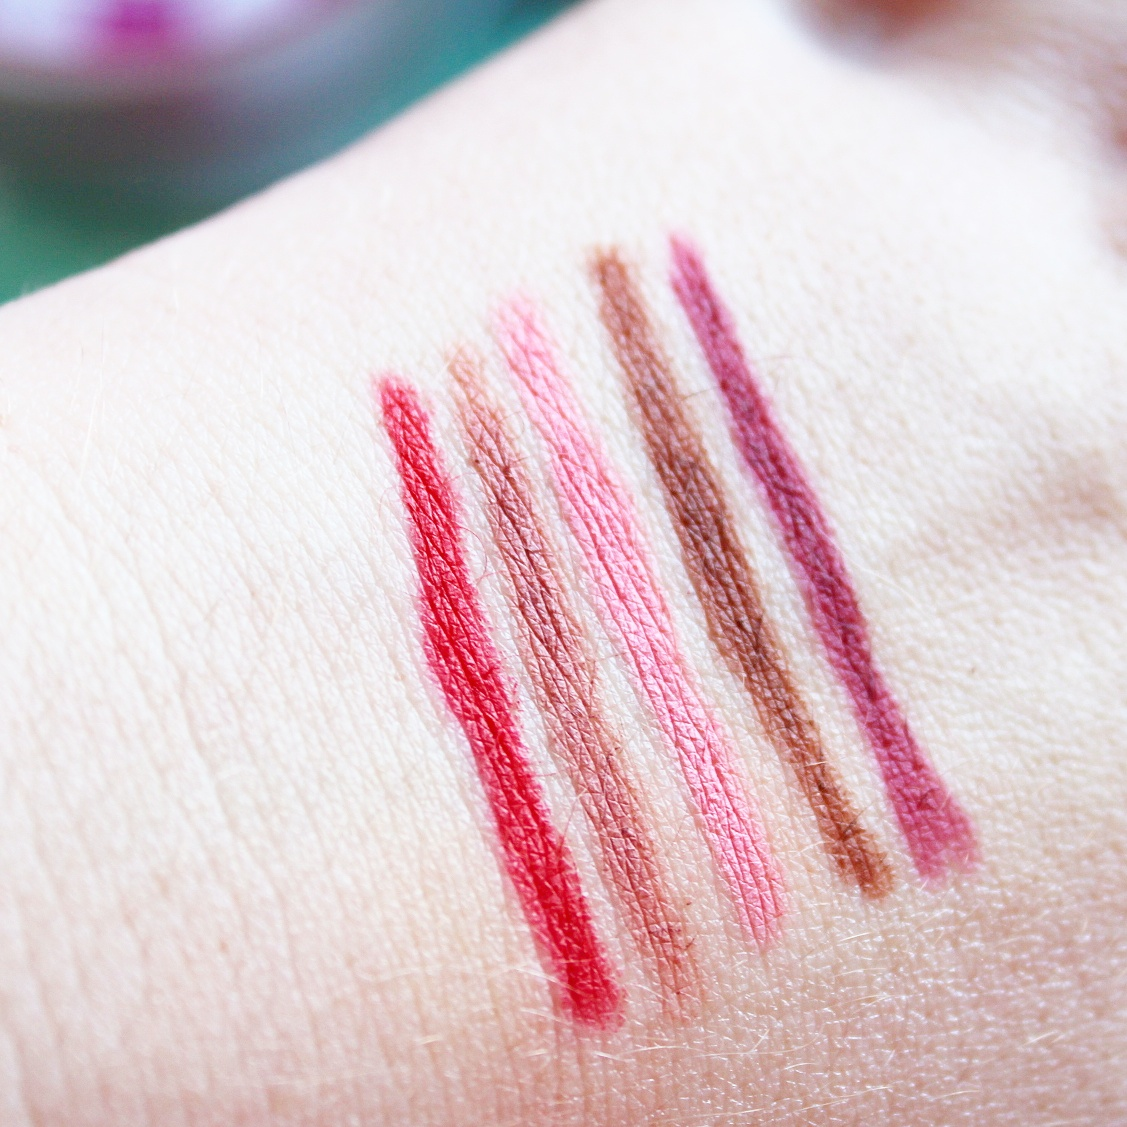 Primark PS... Lip Liner Pencils Swatches